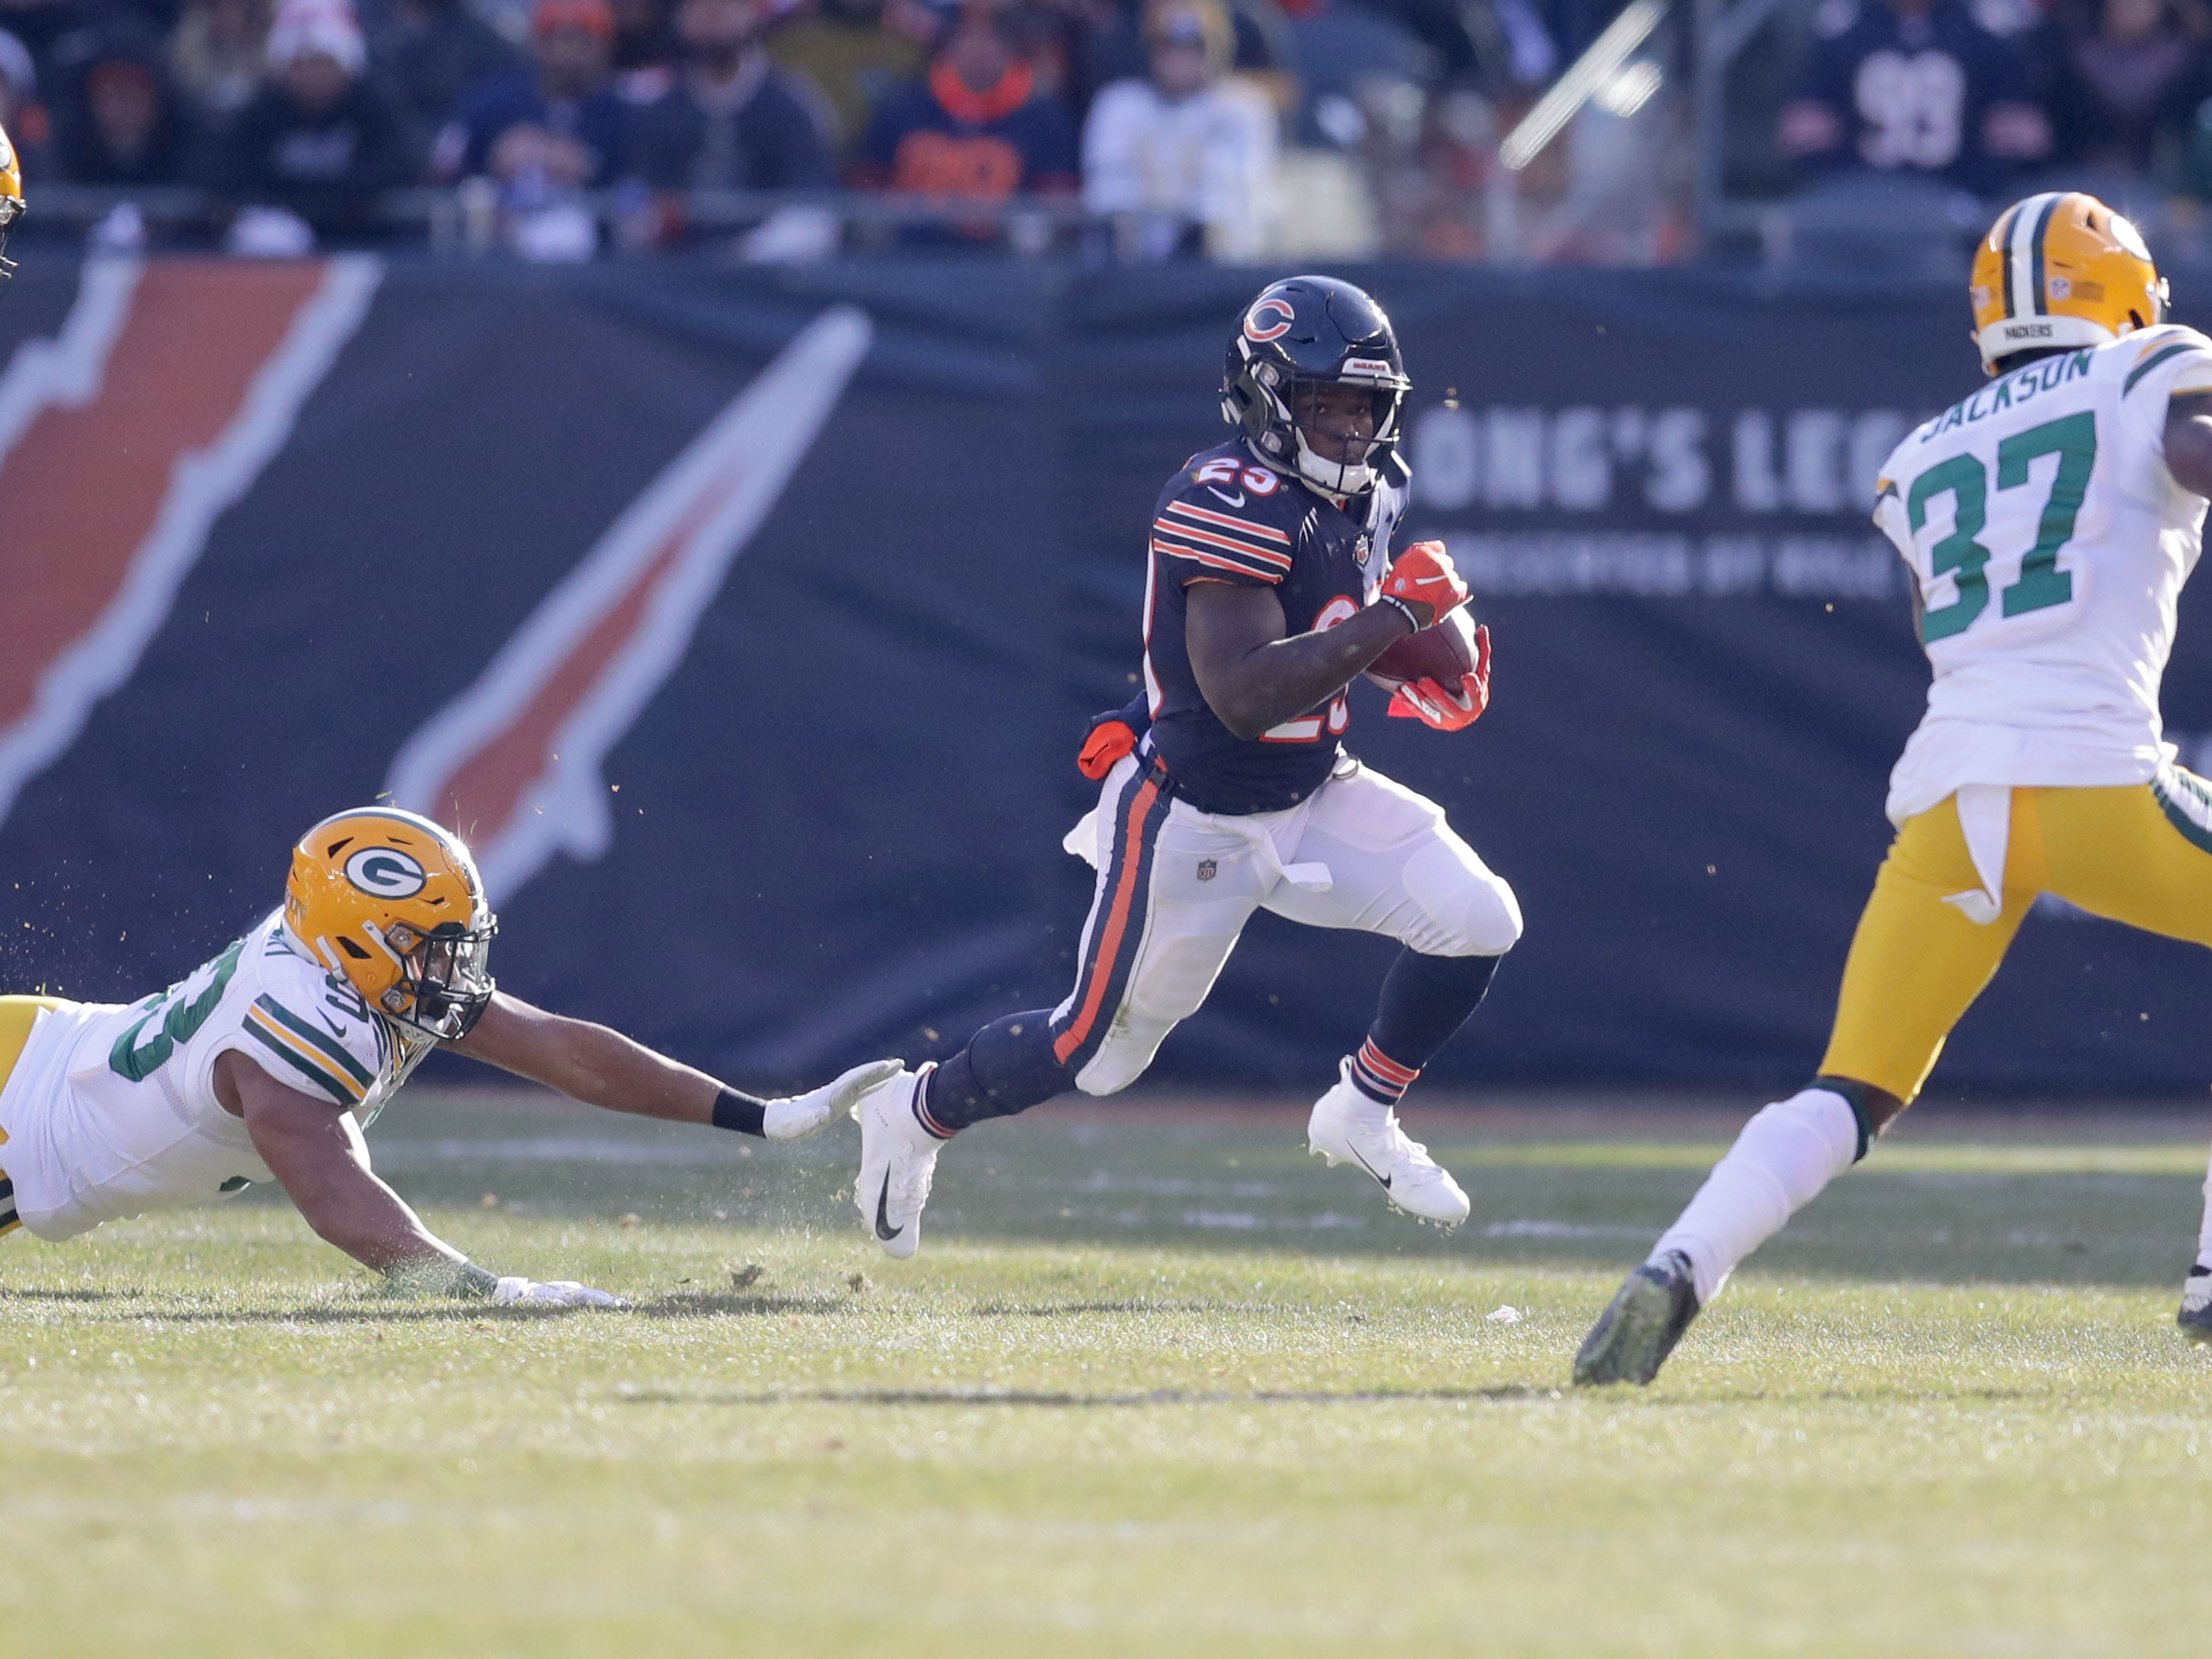 Chicago Bears' Tarik Cohen runs for a gain as Green Bay Packers defenders pursue during the 1st half of the Green Bay Packers game against the Chicago Bears at Soldier Field Sunday, Dec. 16, 2018, in Chicago. Photo by Mike De Sisti / The Milwaukee Journal Sentinel